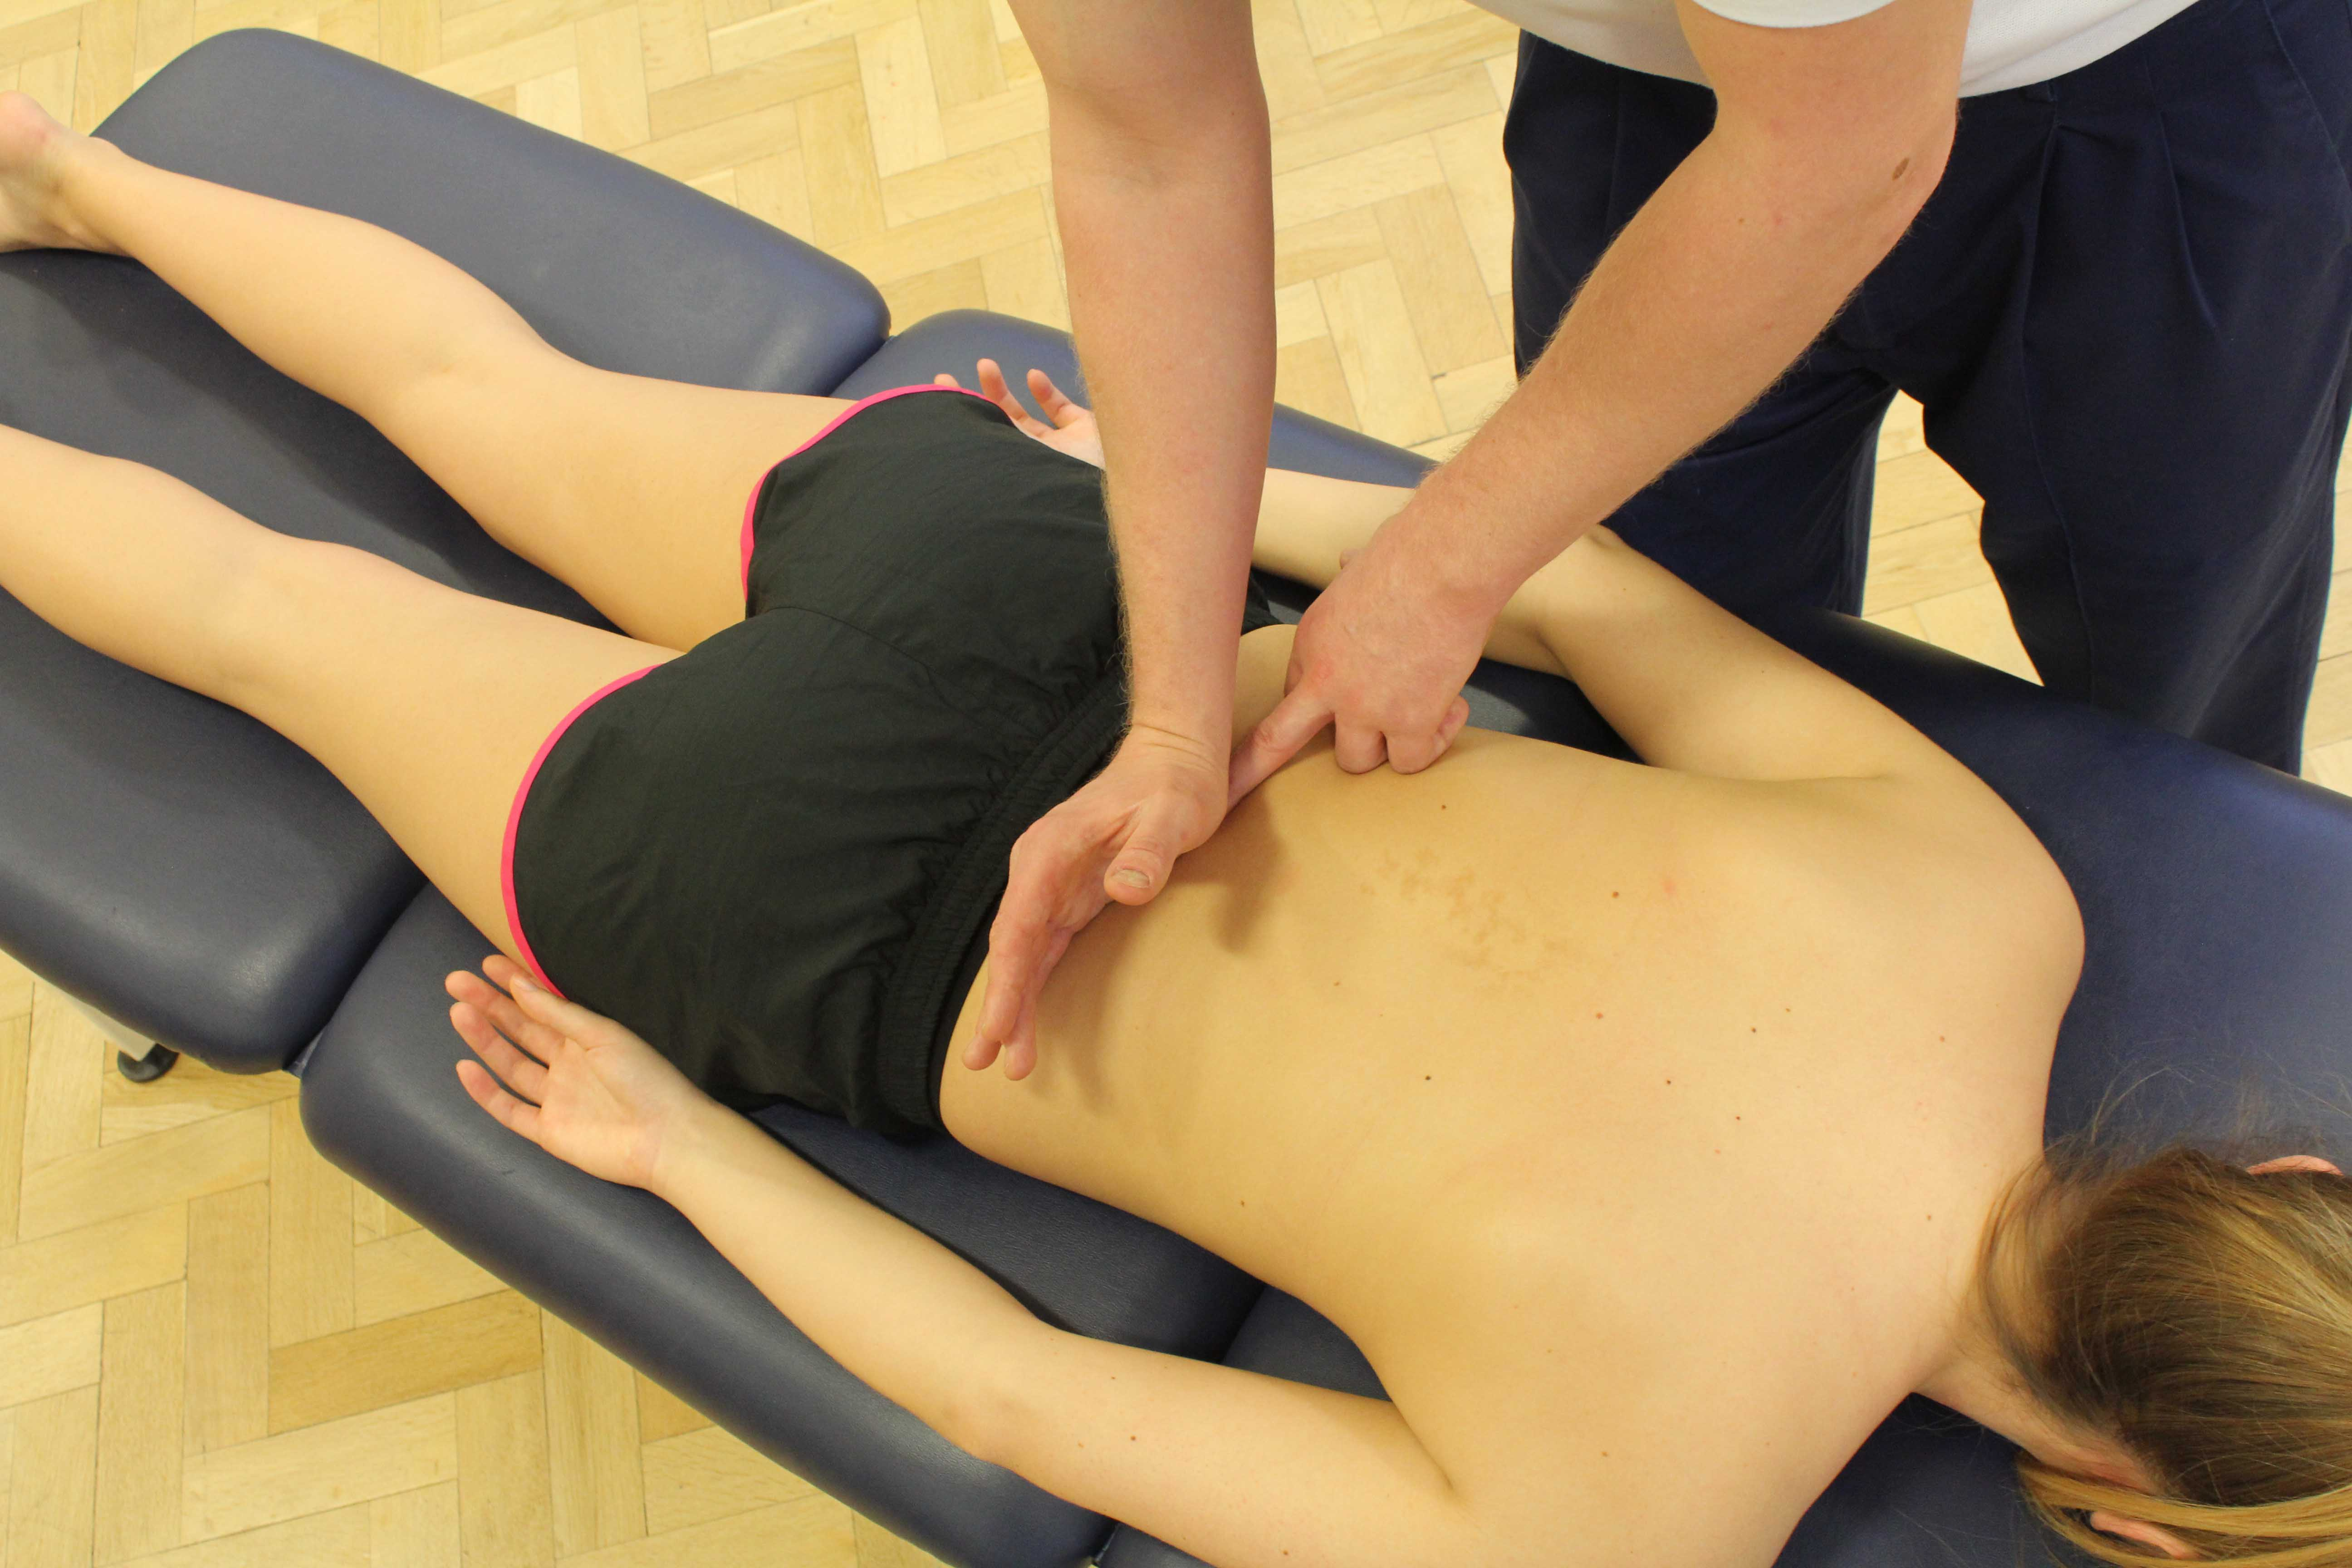 mobilisations of the upper thoracic spine by experienced physiotherapist